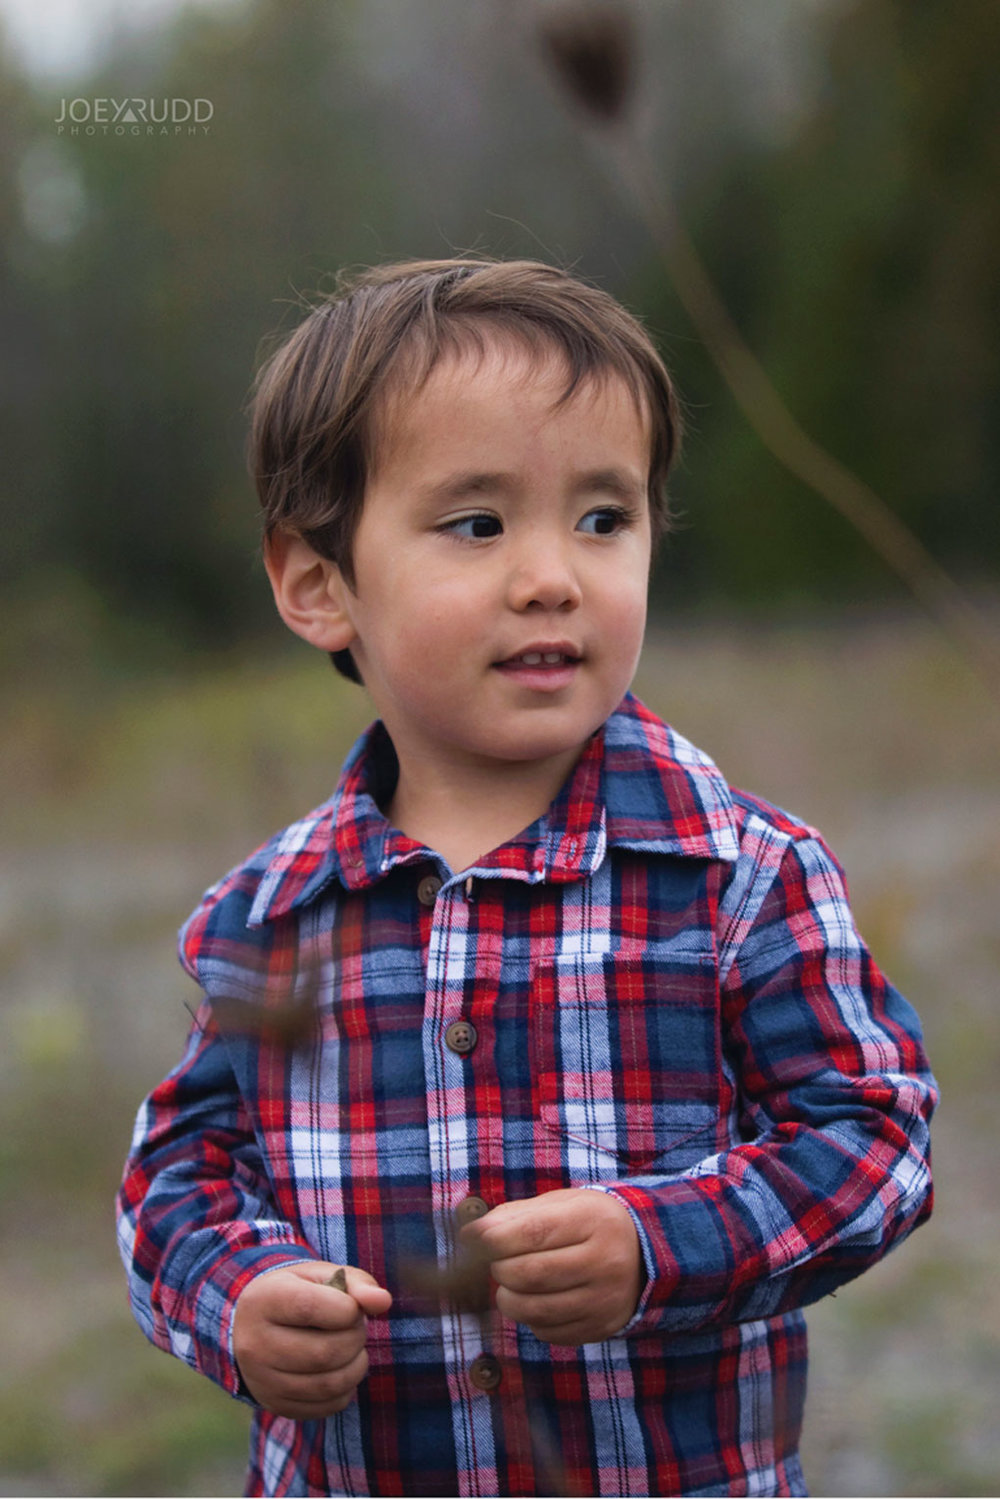 Family Photography Session in Perth Ontario by Ottawa Photographer Joey Rudd Photography  Children